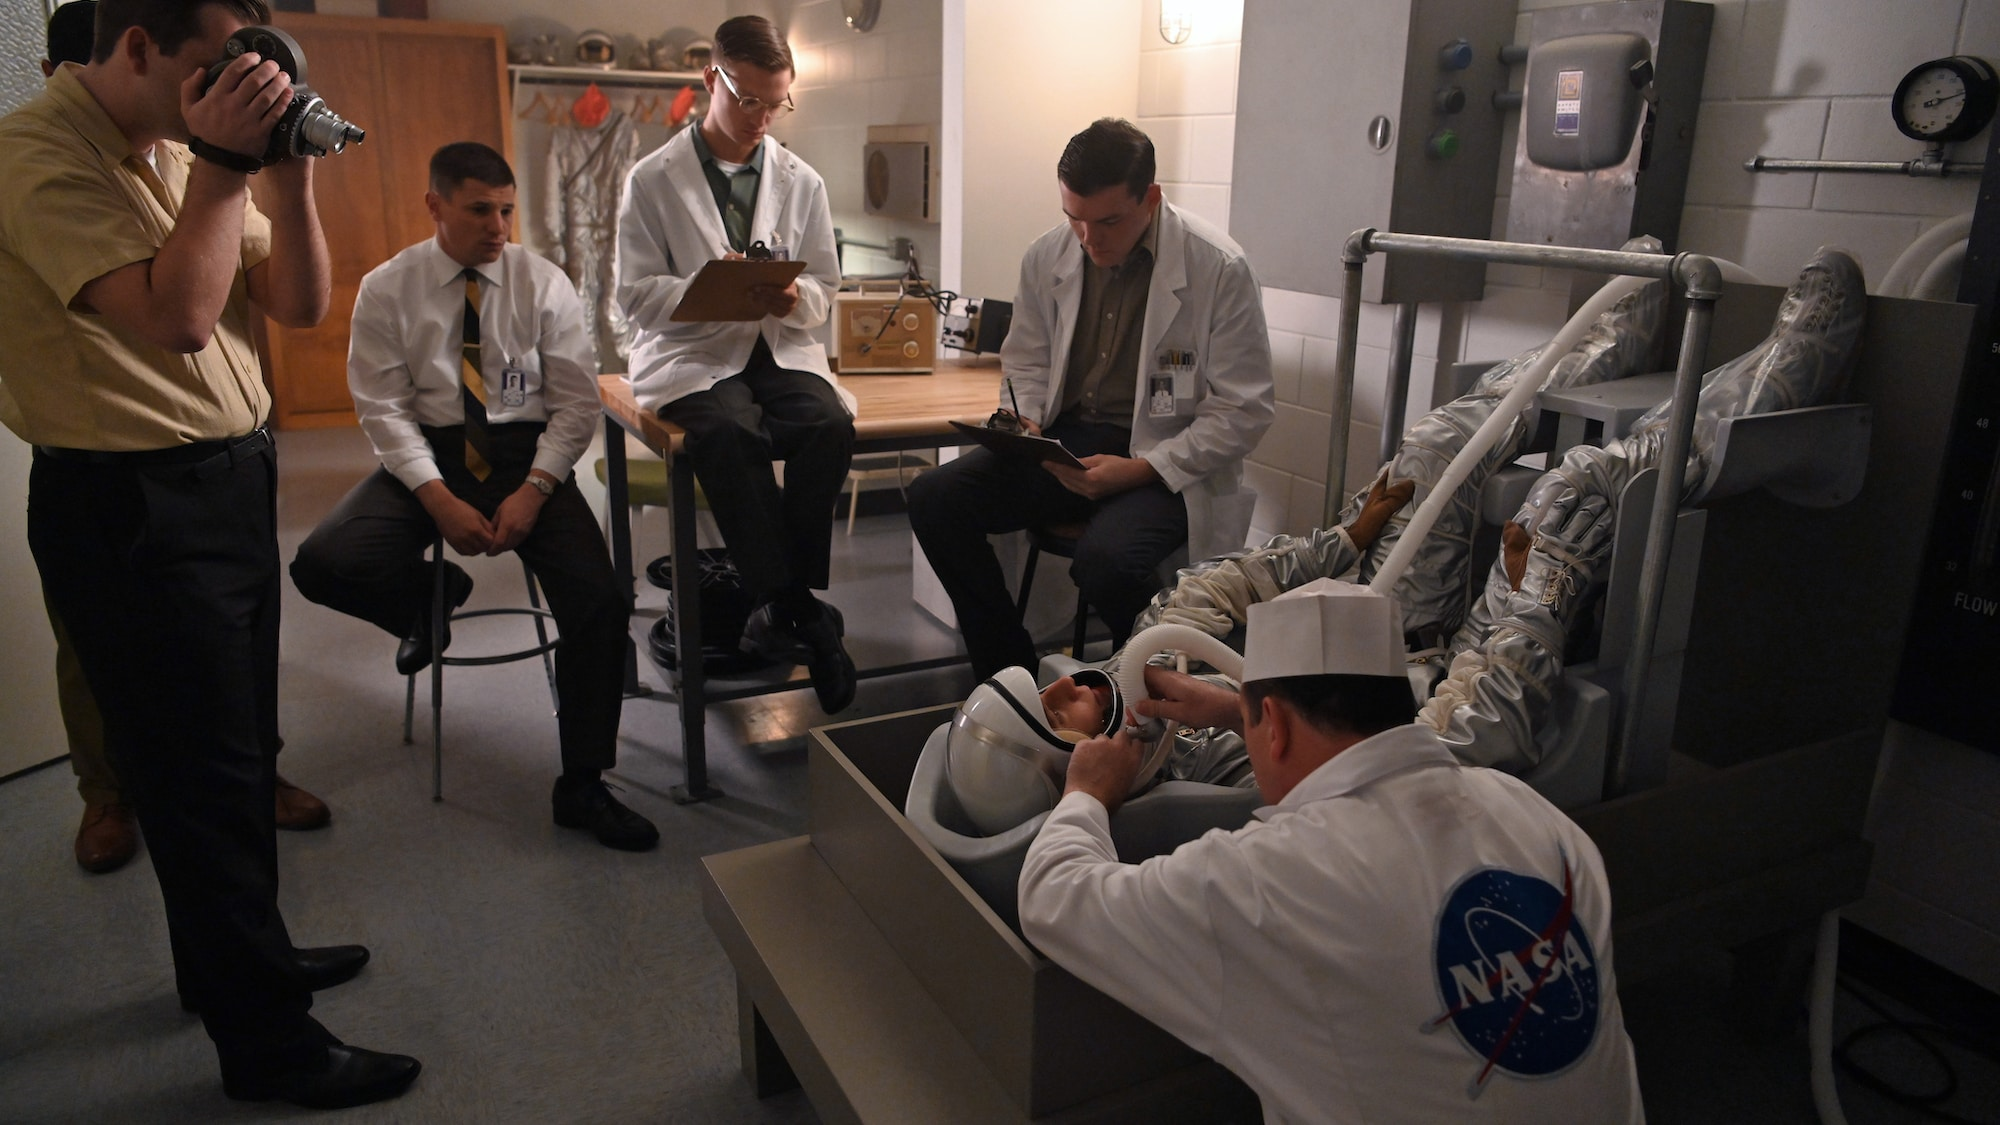 Jake McDorman as Alan Shepard (on back) in National Geographic's THE RIGHT STUFF streaming on Disney+. (National Geographic/Gene Page)